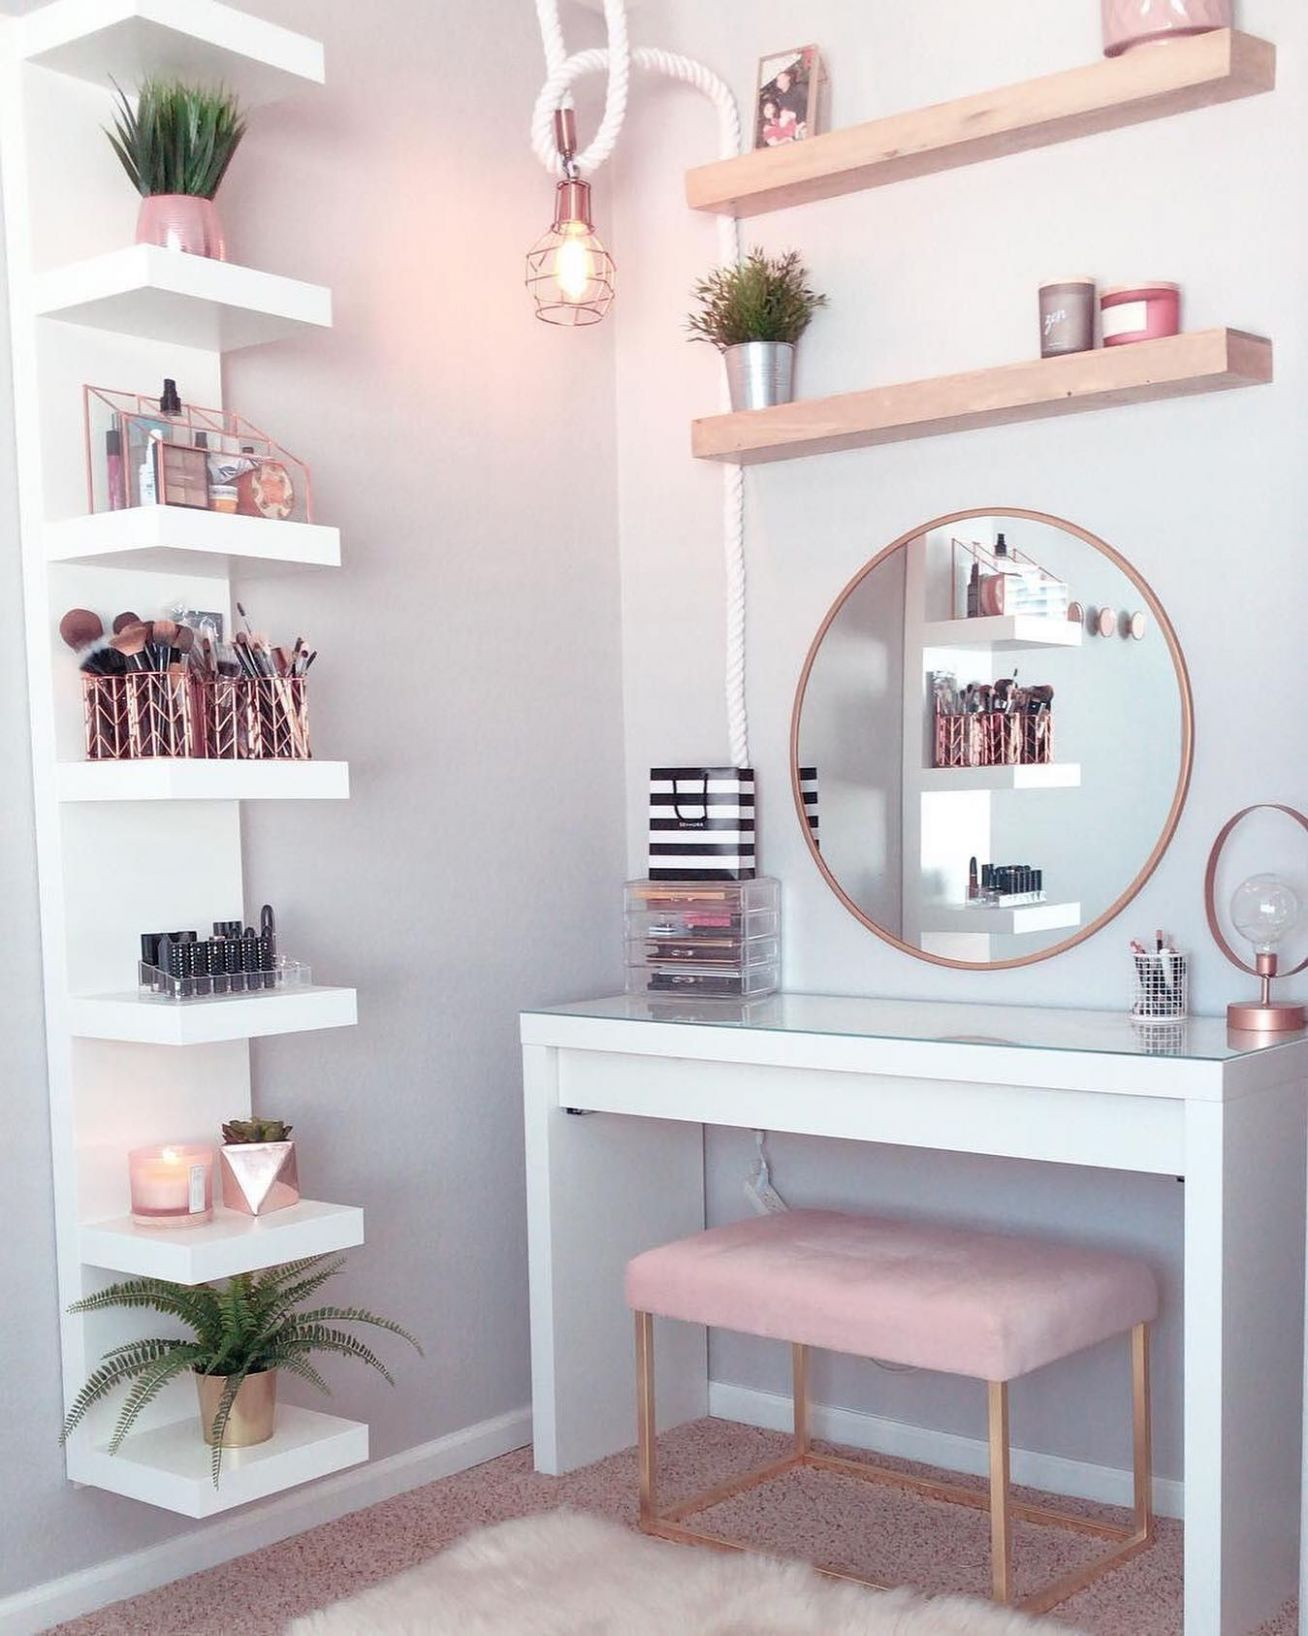 Dressing table ideas: How to organise your dressing table - makeup room setup ideas